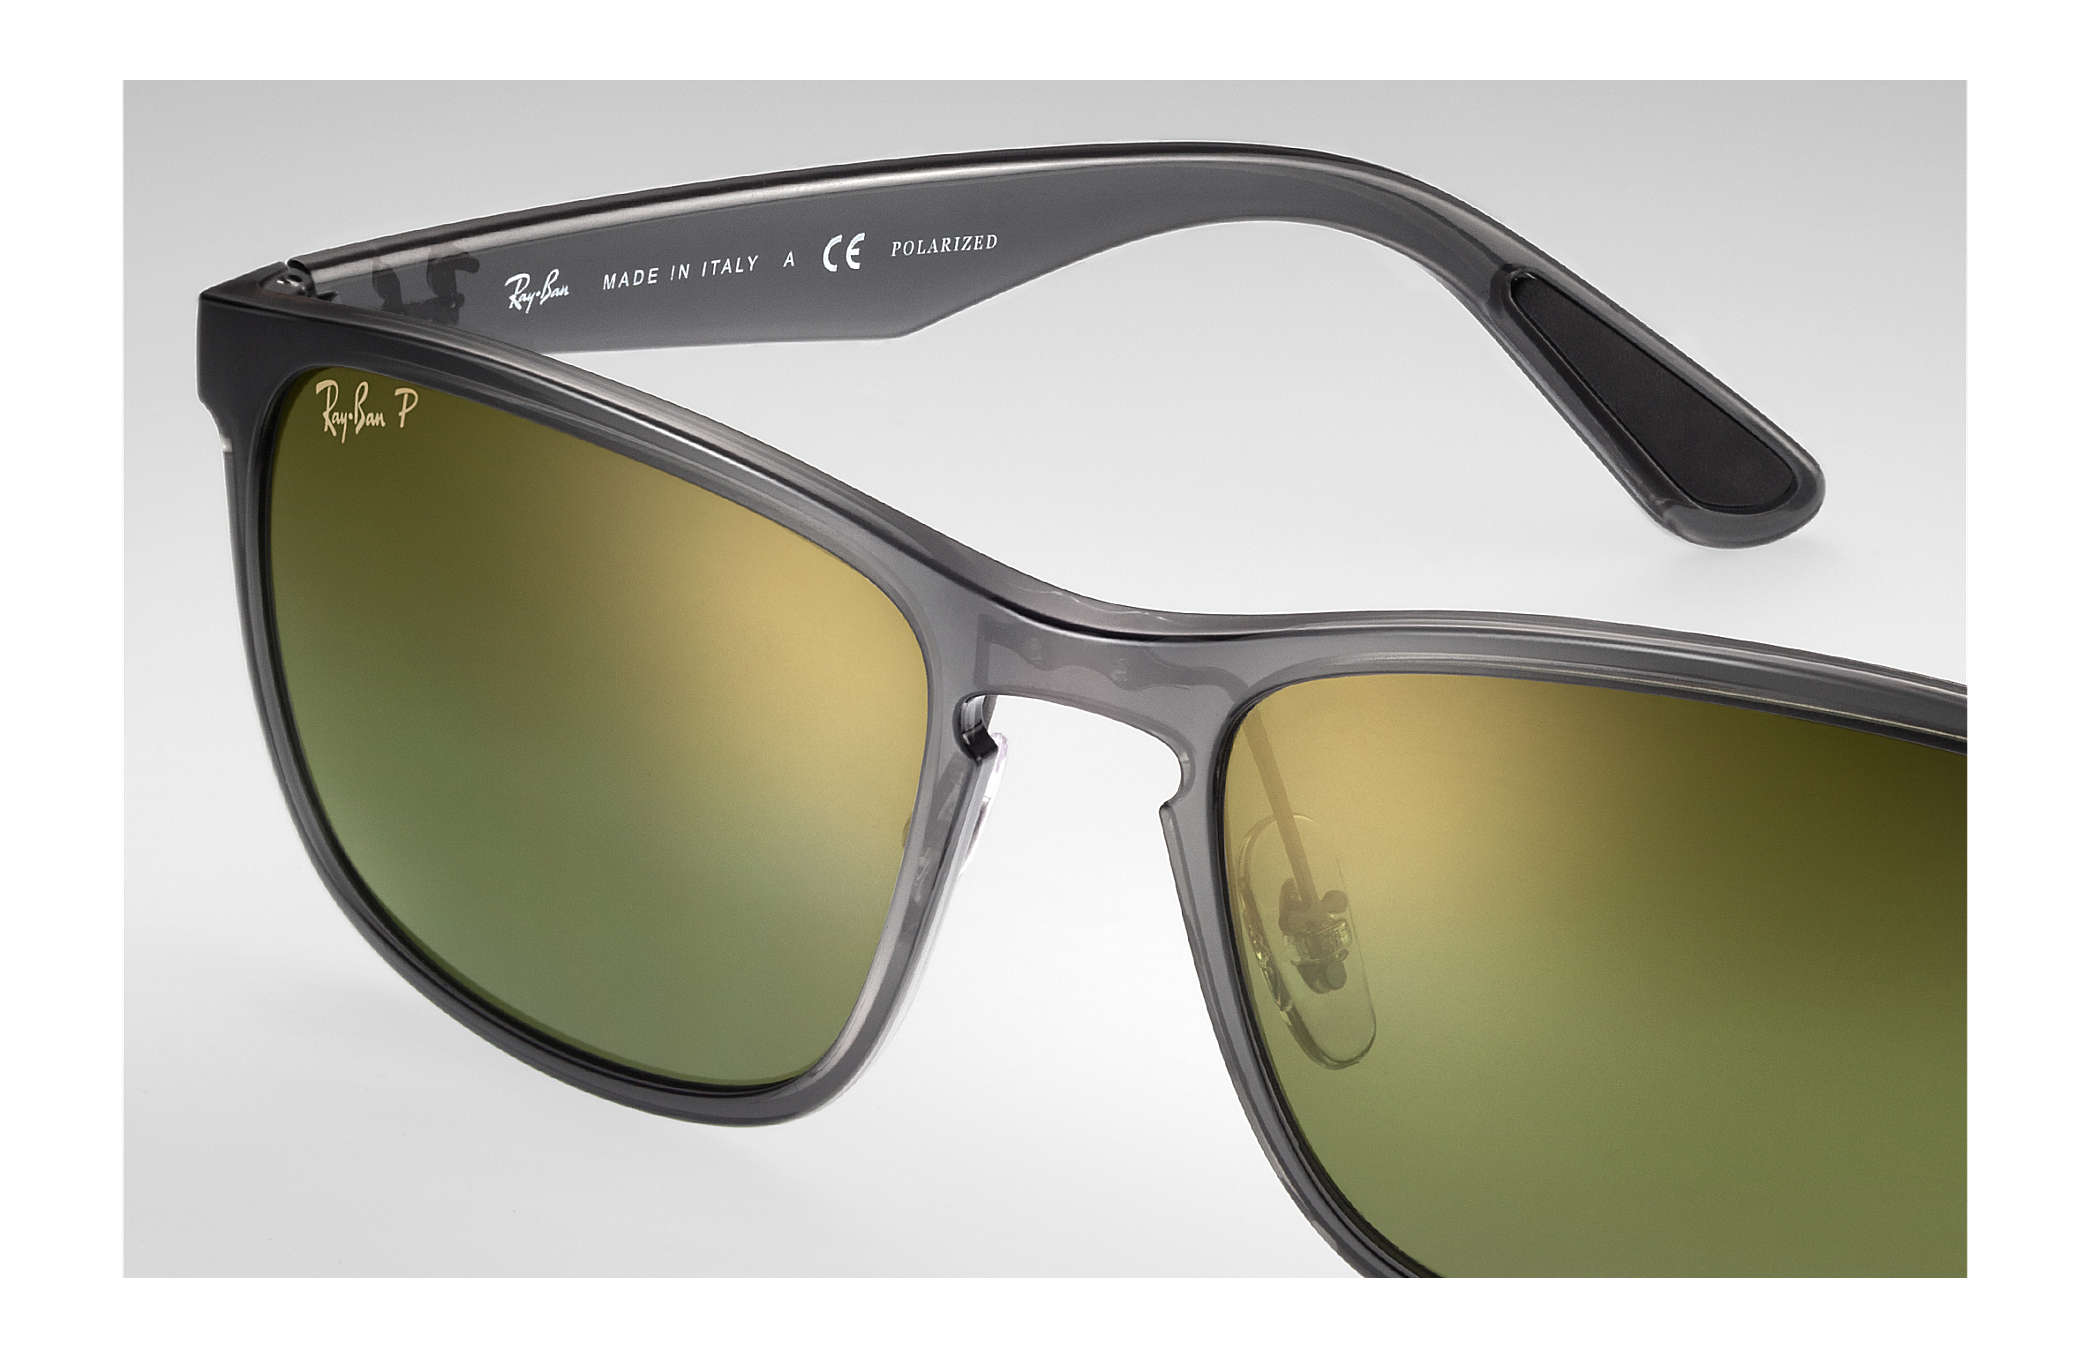 ray ban sunglasses price list in italy